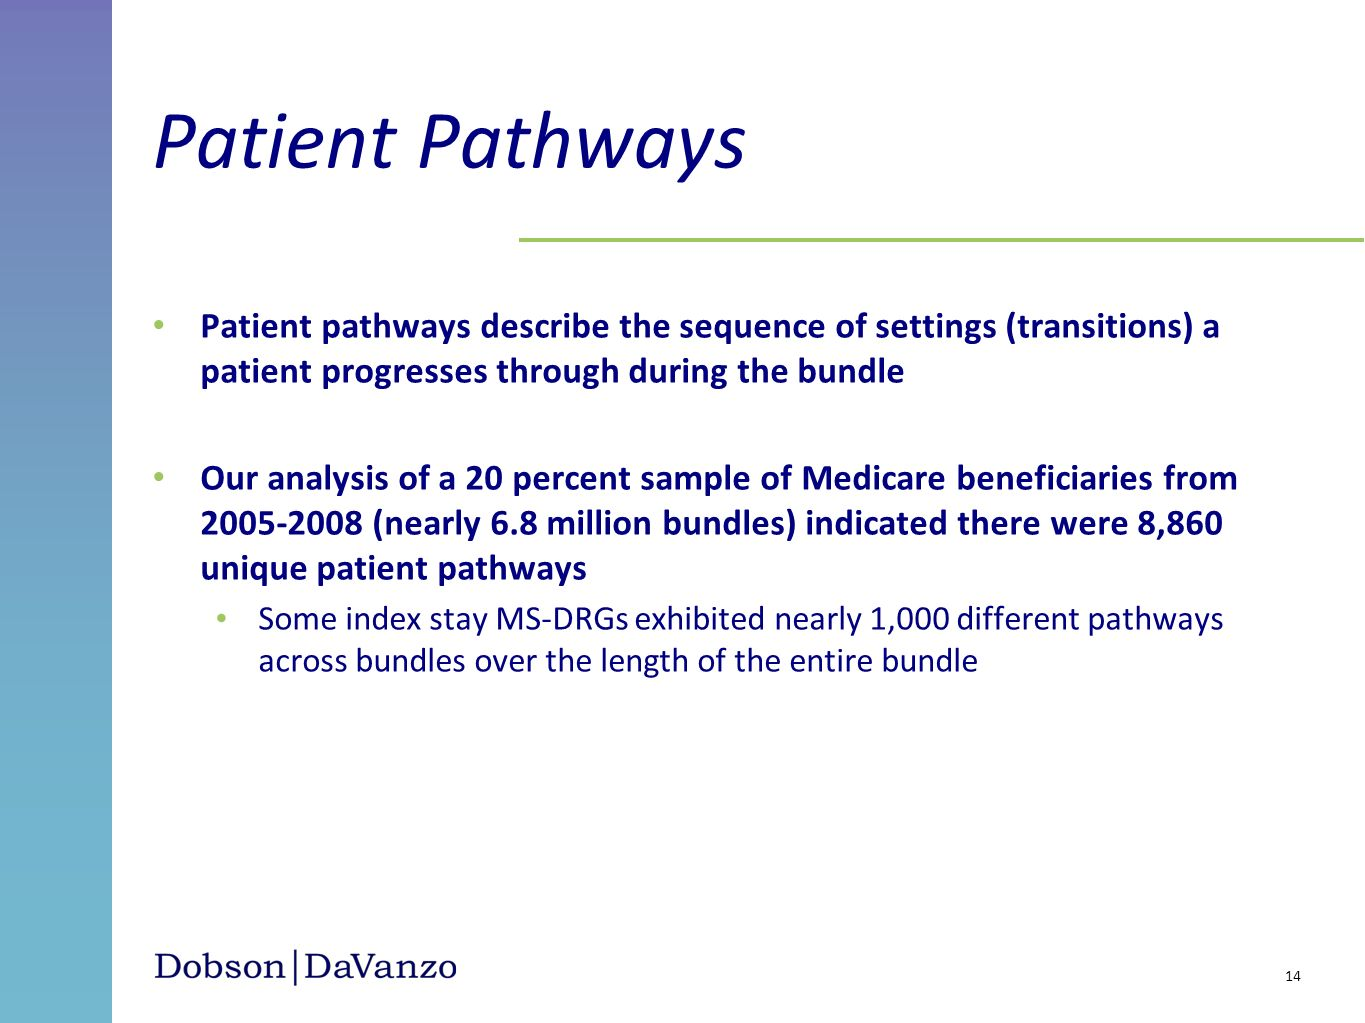 Patient Pathways Patient pathways describe the sequence of settings (transitions) a patient progresses through during the bundle.